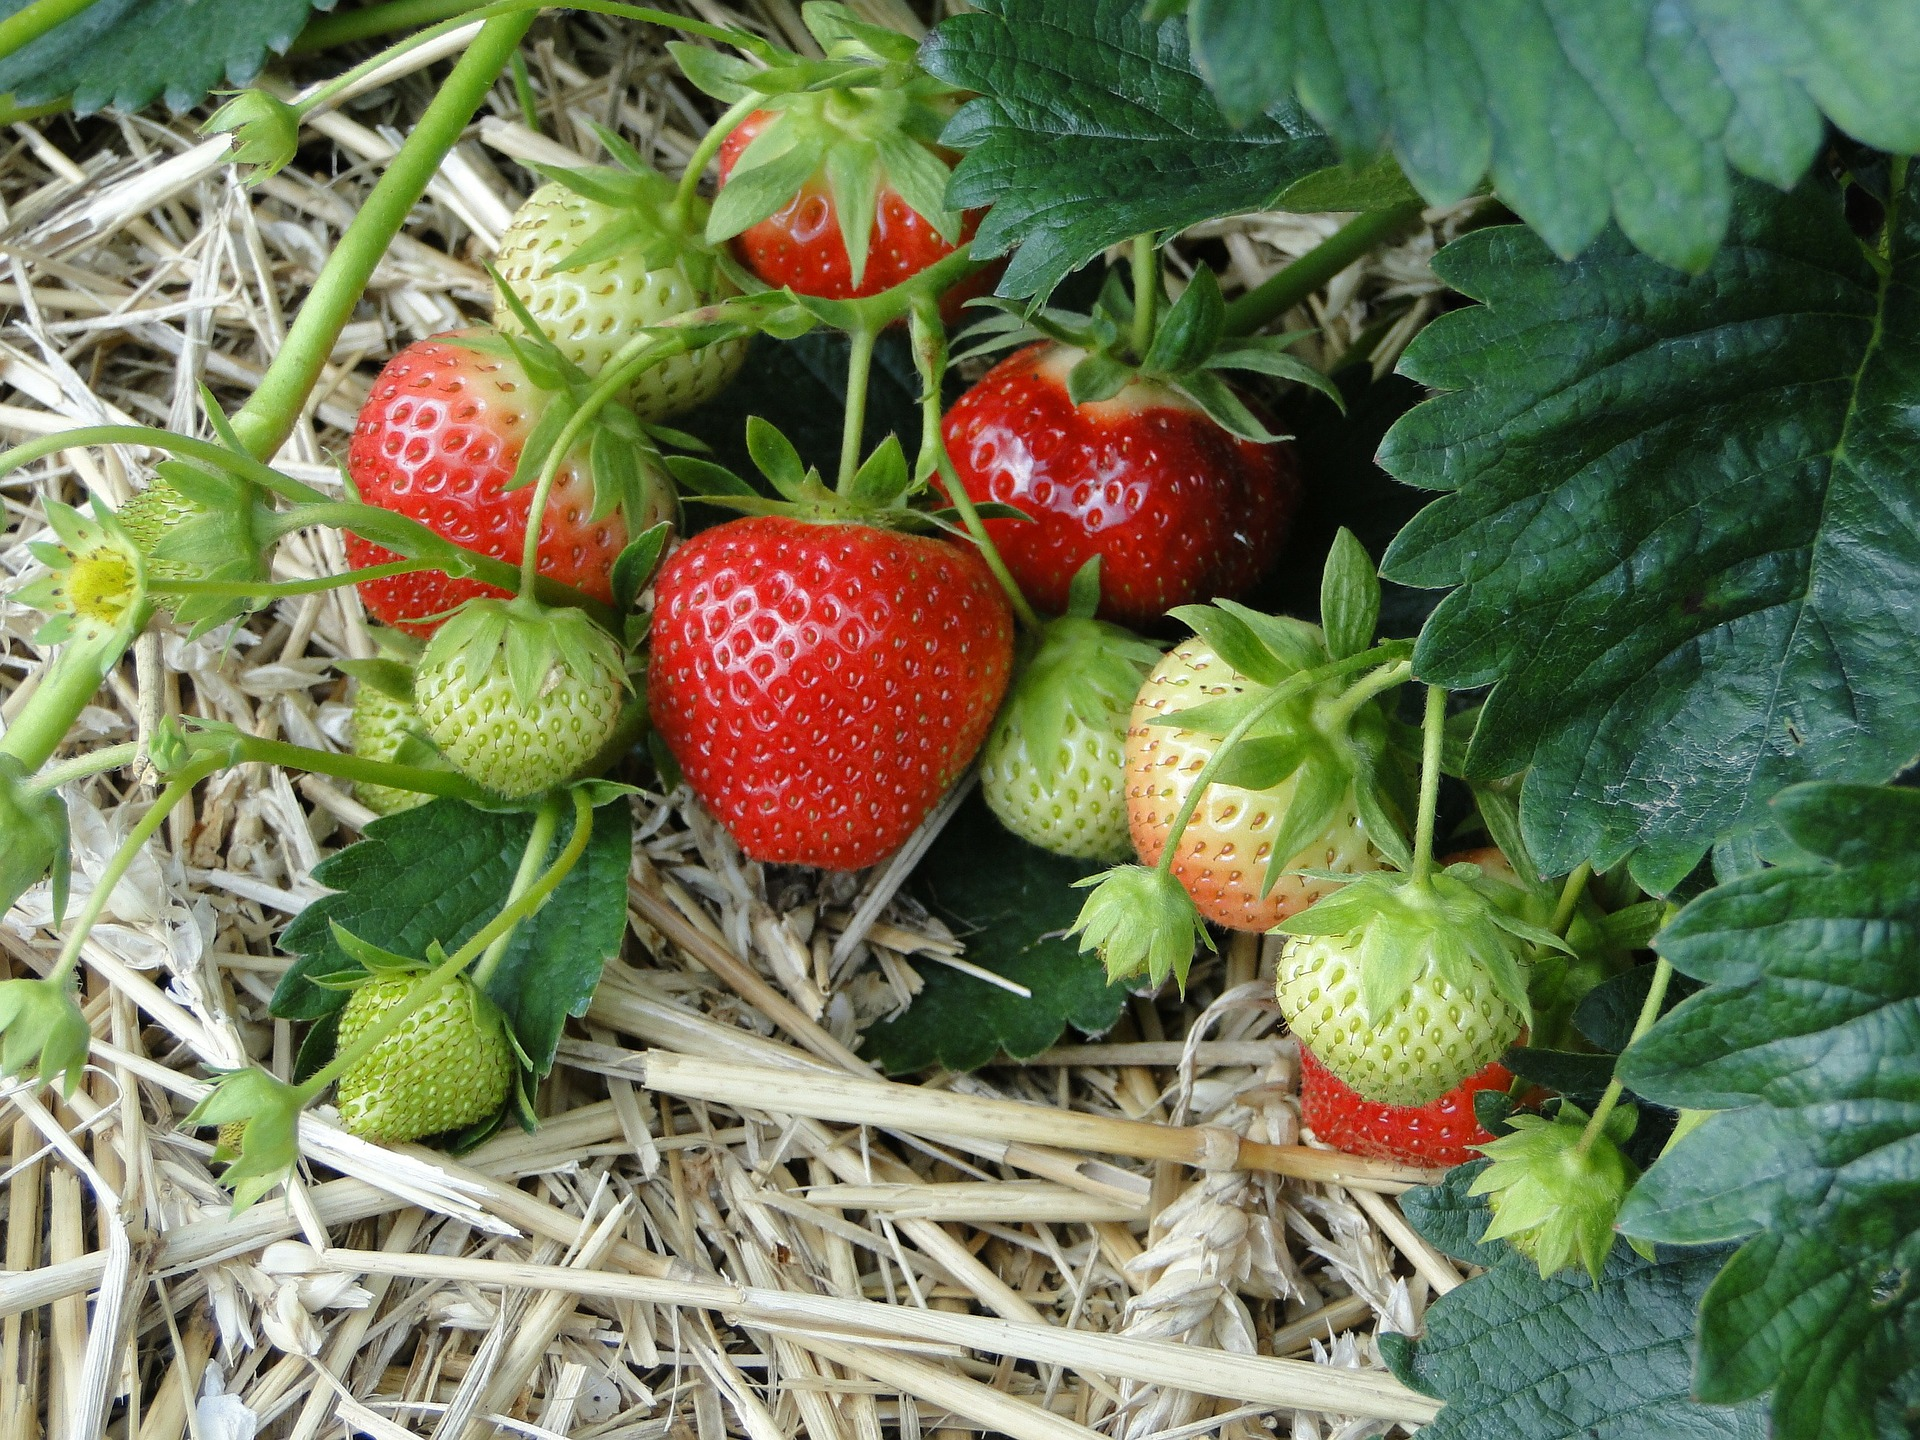 Growing Strawberries – How to Grow the Most Delicious Strawberries You've Ever Eaten